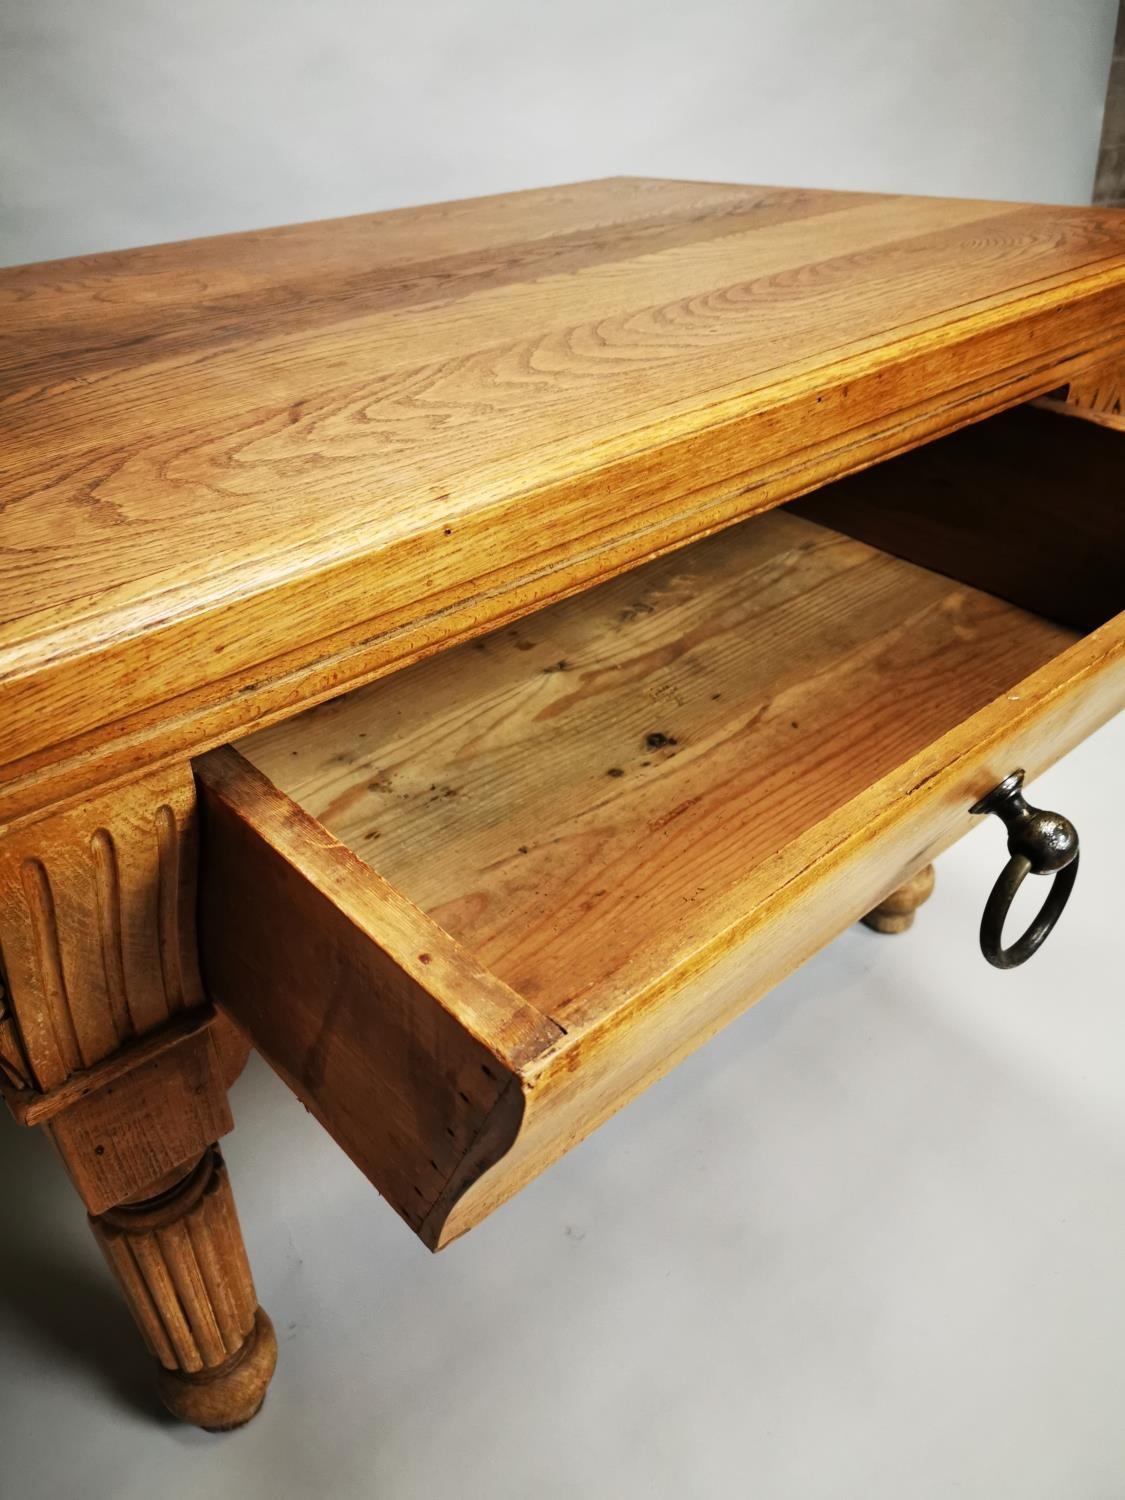 Early 20th C. pine and oak butchers table - Image 9 of 12